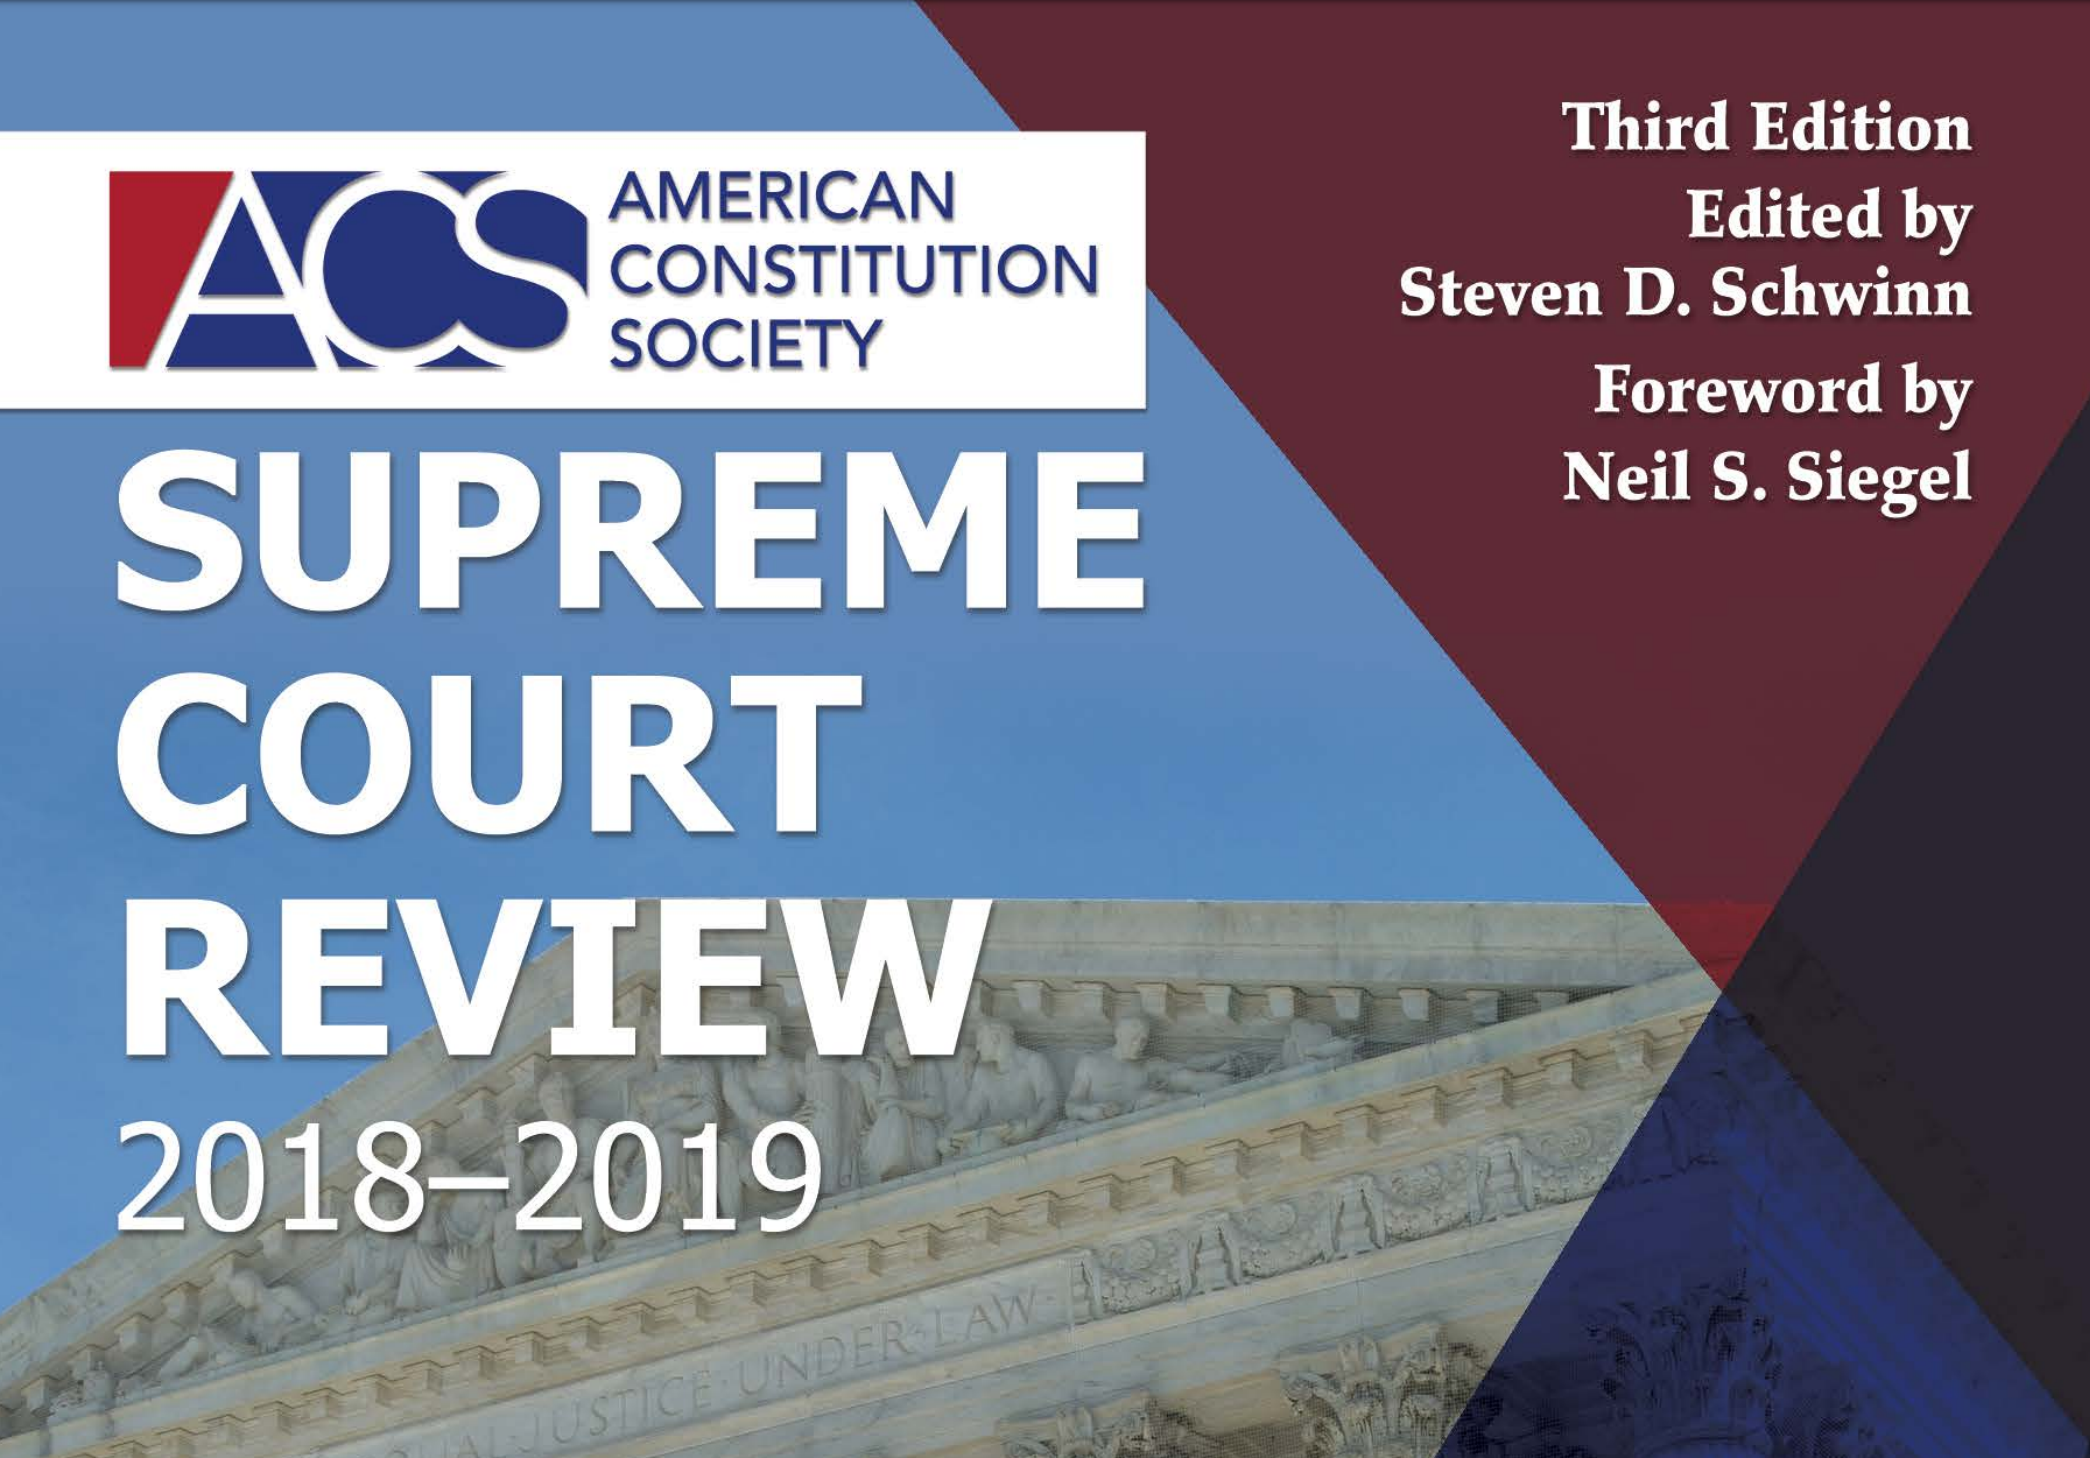 SCOTUS Review Cover 20182019 crop upper